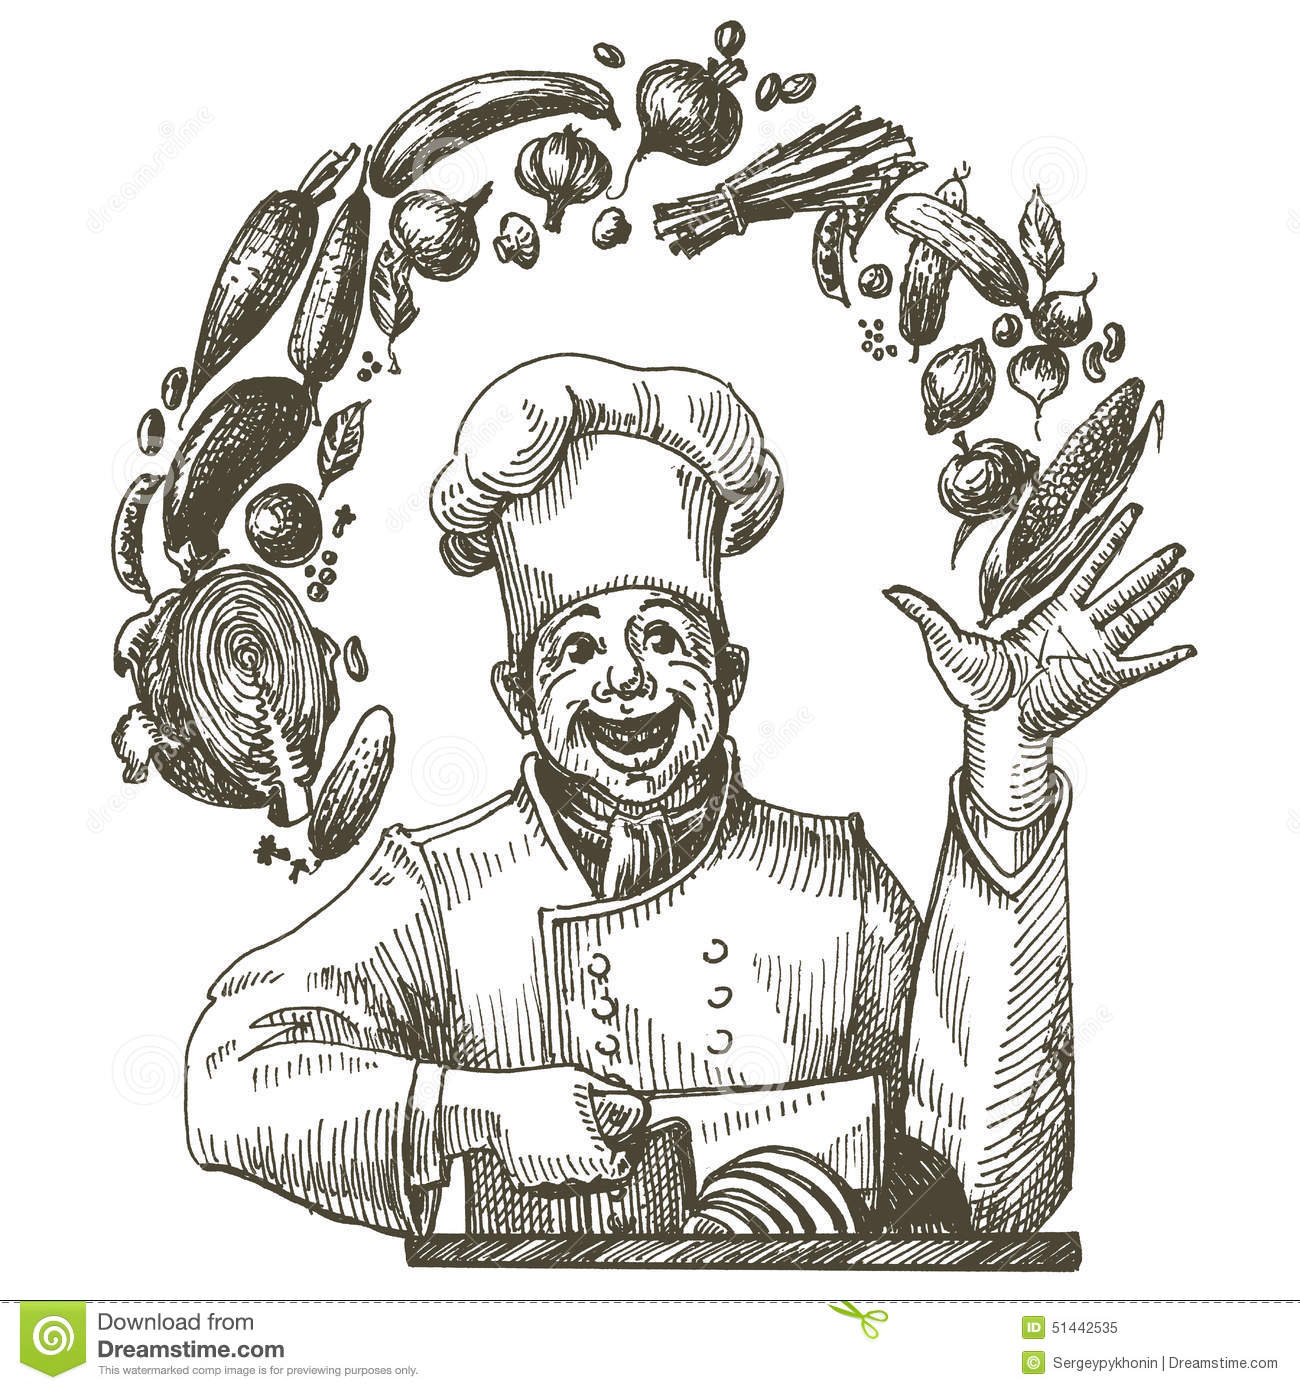 Dream Kitchen Design Drawing: Cook In The Kitchen On A White Background. Sketch Stock